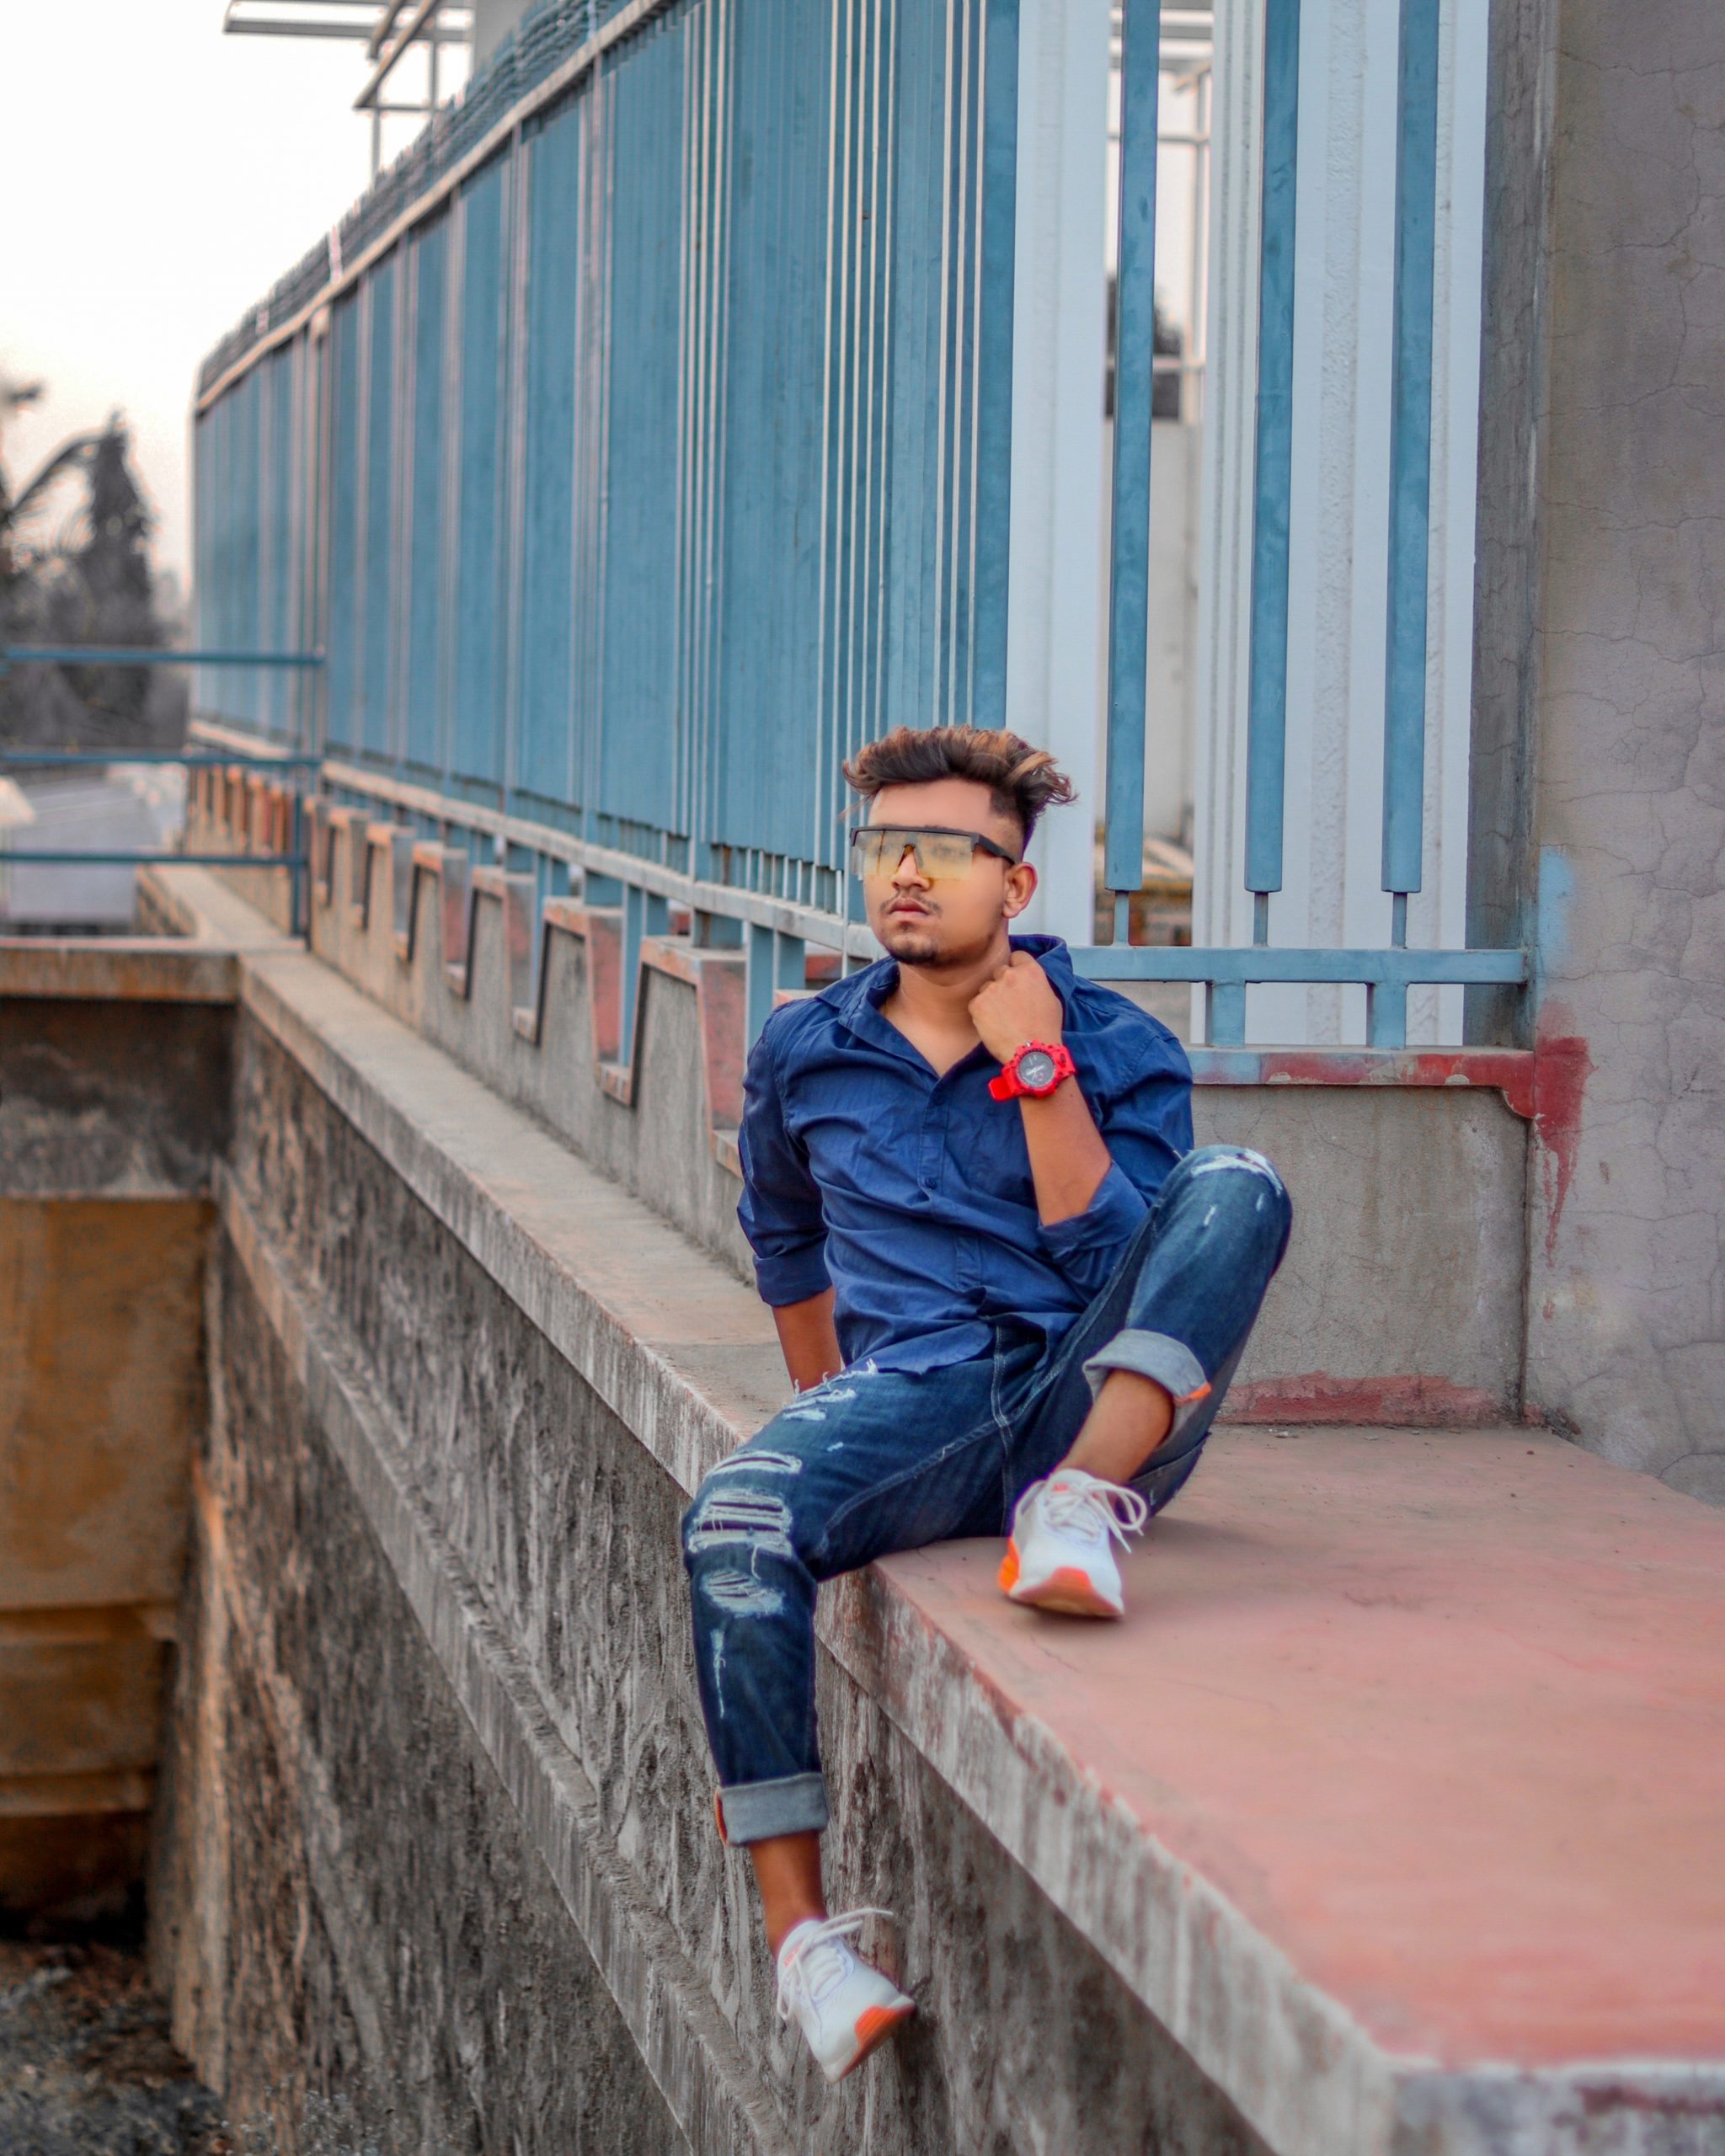 Boy posing with style